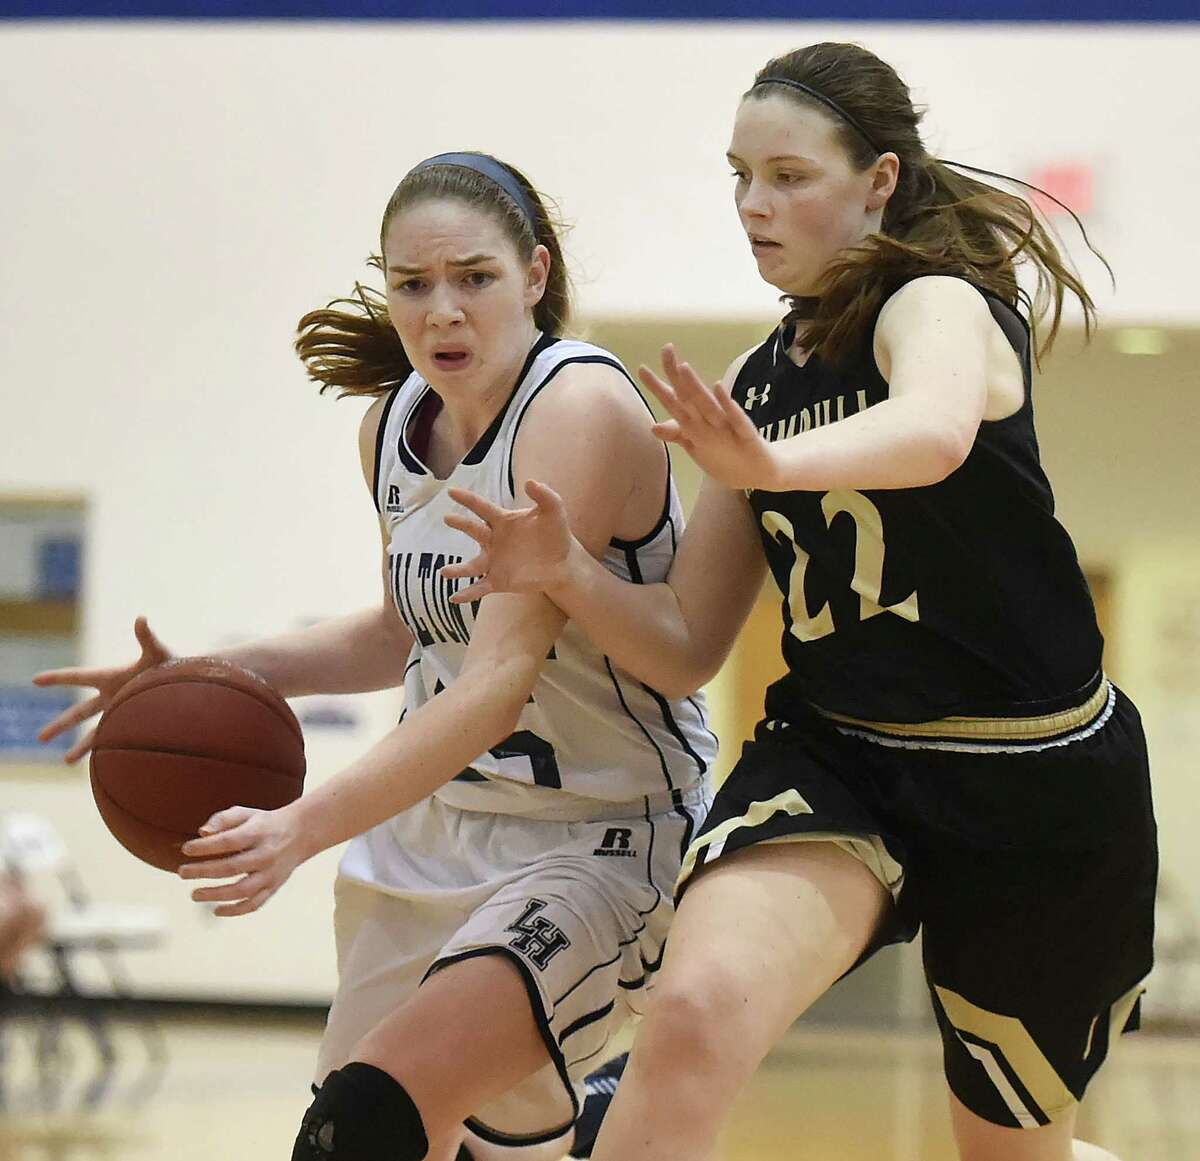 Trumbull junior Aisling Maguire pressures Lauralton Hall senior Trish Gildea as she drives to the hoop in a 59 - 50 win for the visiting Eagles, Wednesday, January 25, 2017, at the Lauralton Hall Athletic Center in Milford. (Catherine Avalone/New Haven Register)